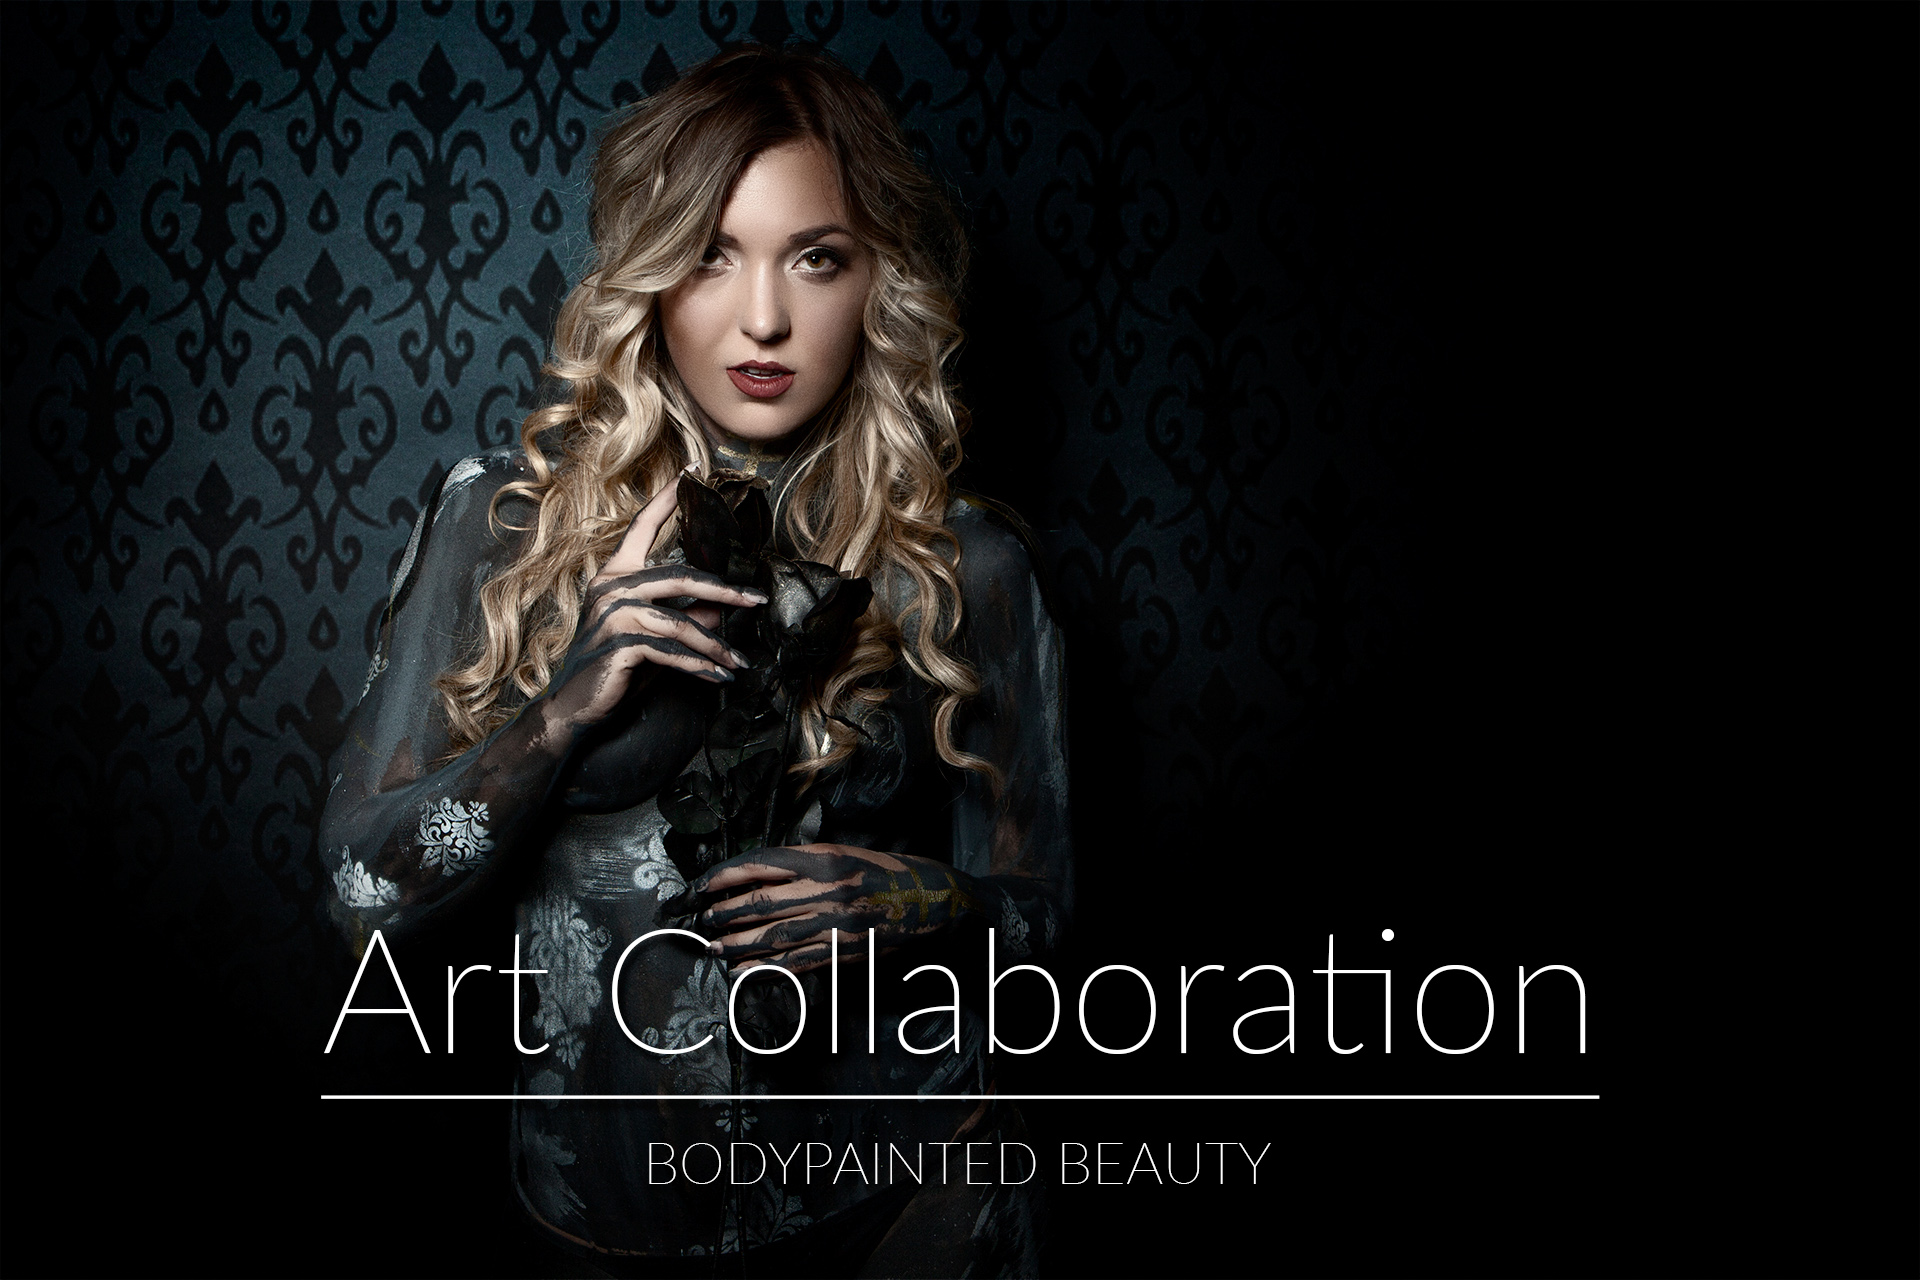 Art Collaboration - Bodypainted Beauty